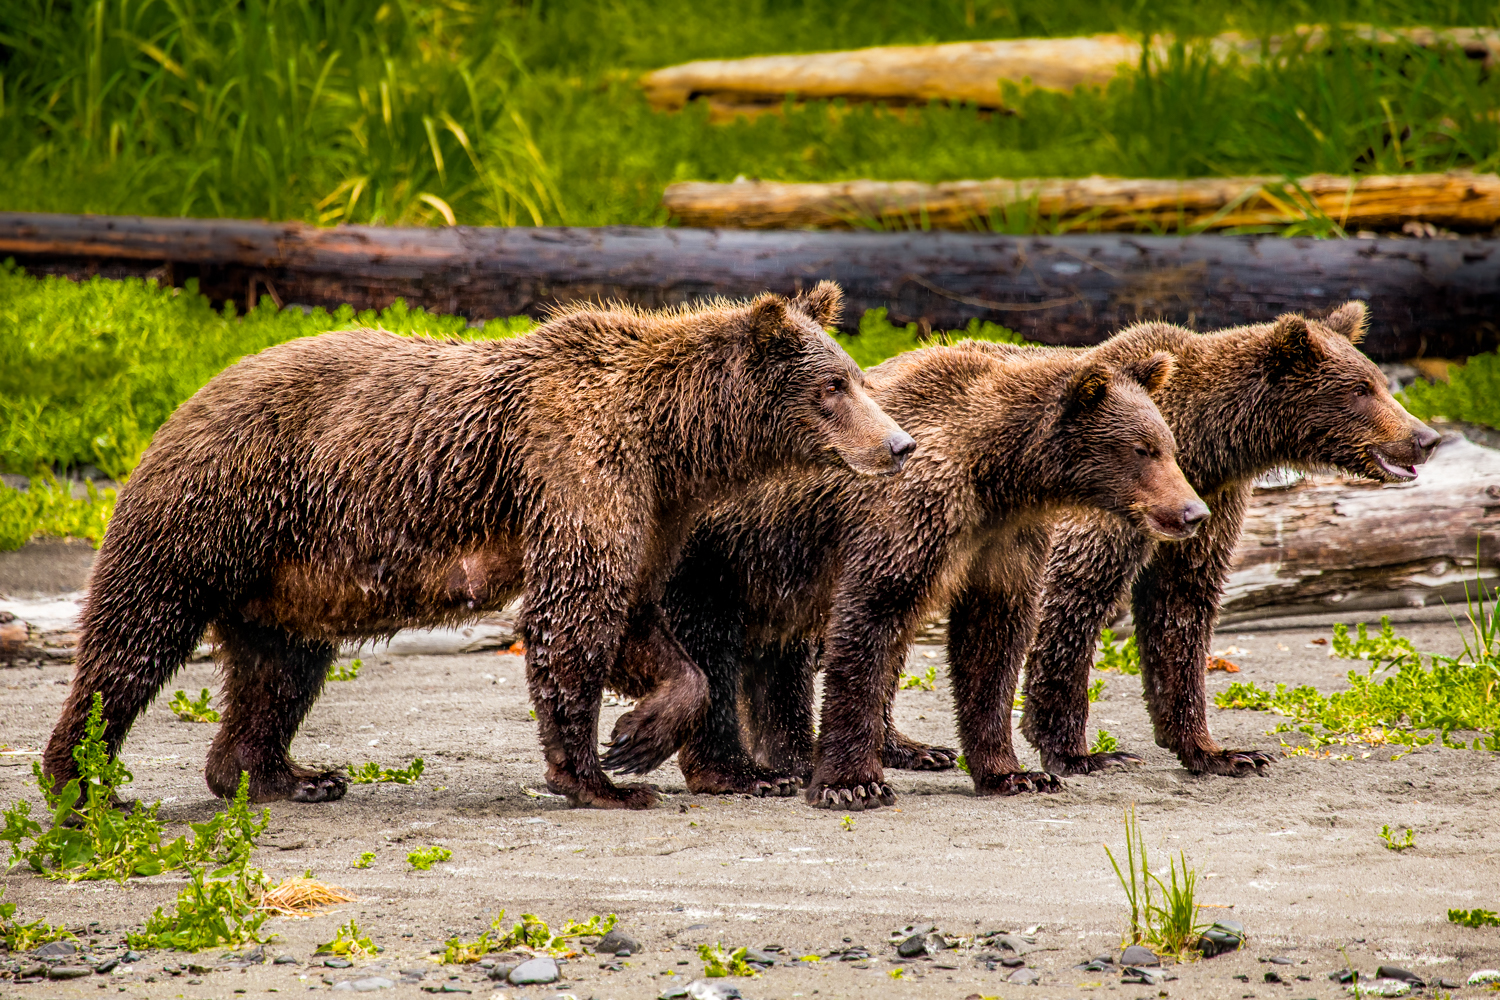 Three yearling bear cubs